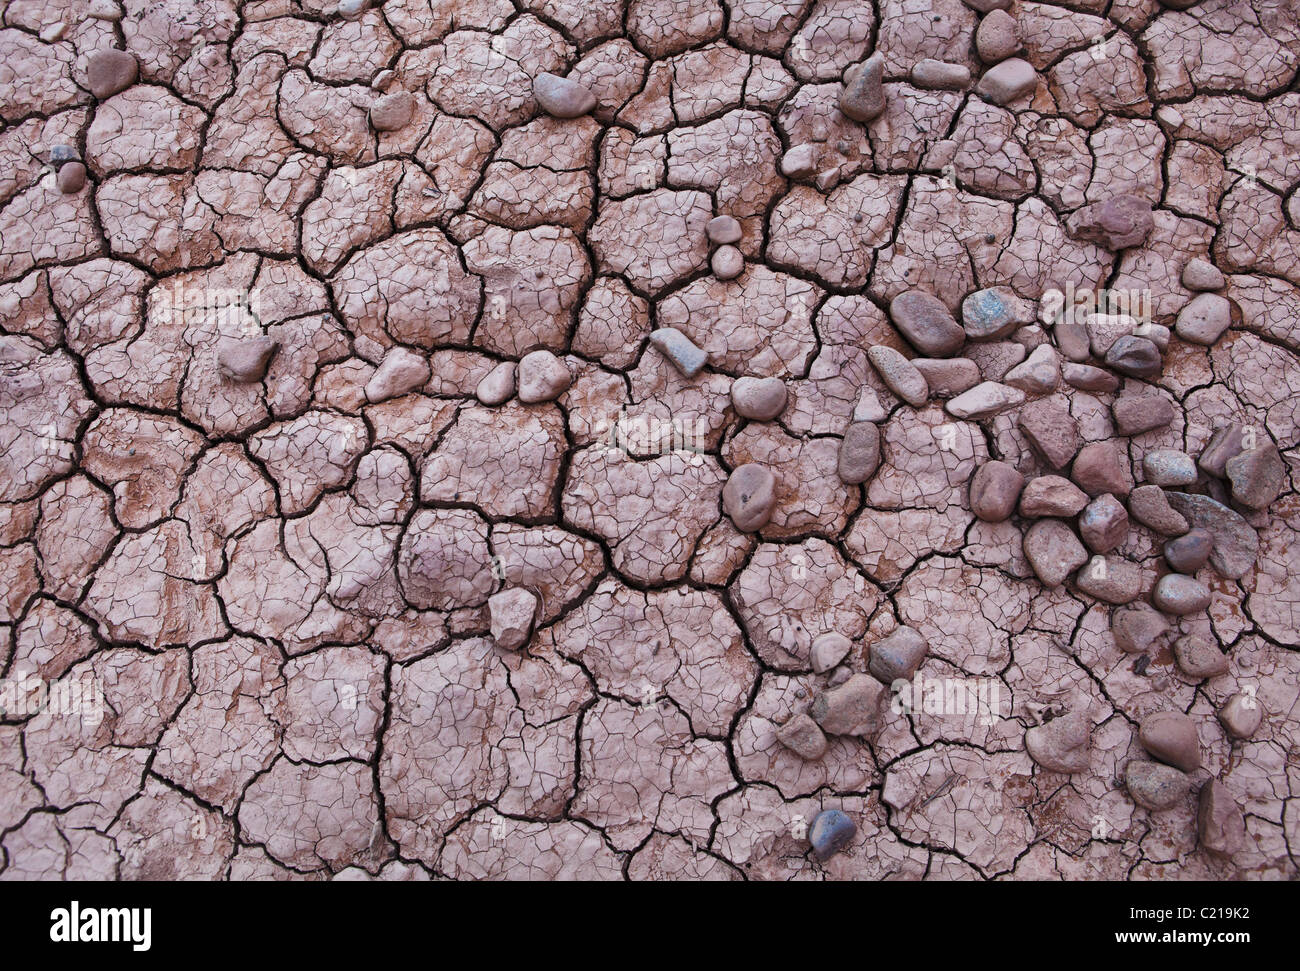 Cracked mud and pebbles in Arches National Park, Utah, USA. - Stock Image